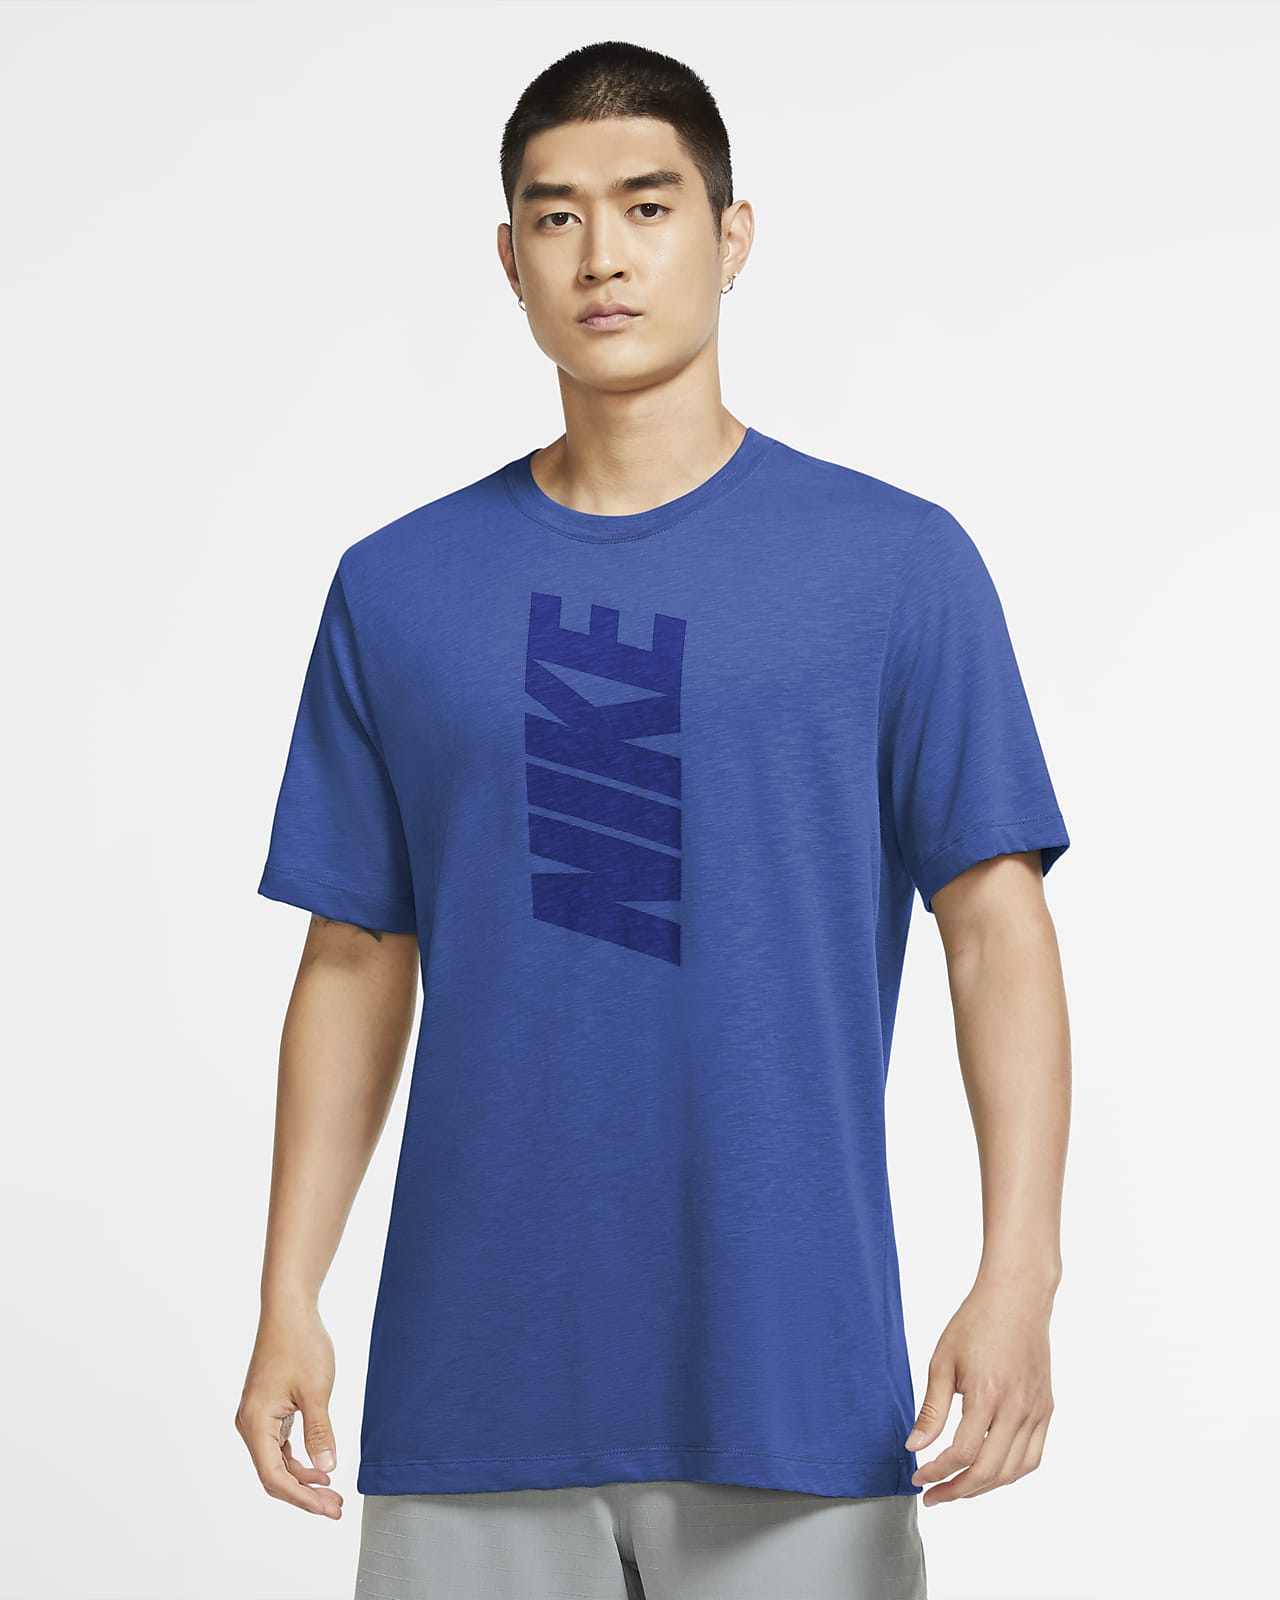 Nike Dri-FIT Men's Block Logo Training T-Shirt